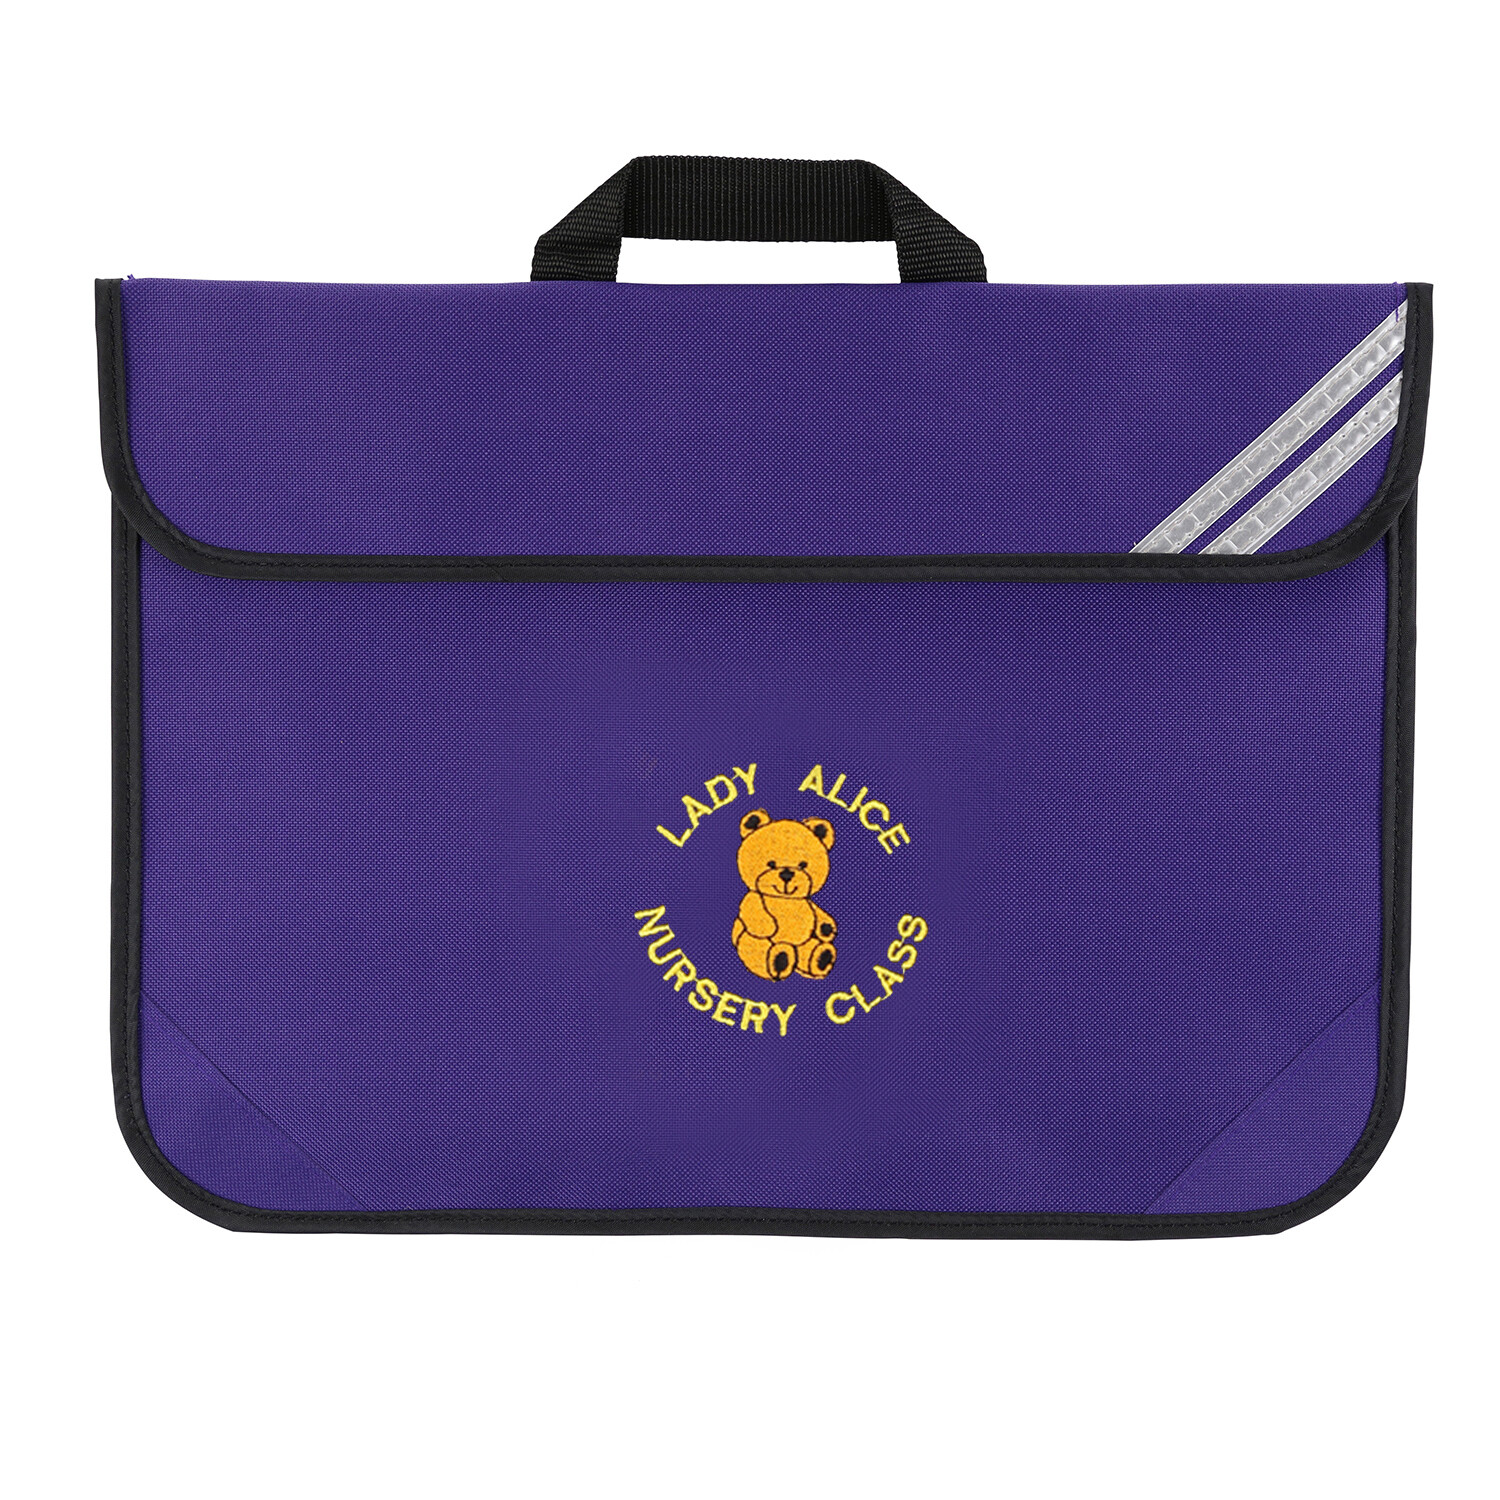 Lady Alice Nursery Book Bag